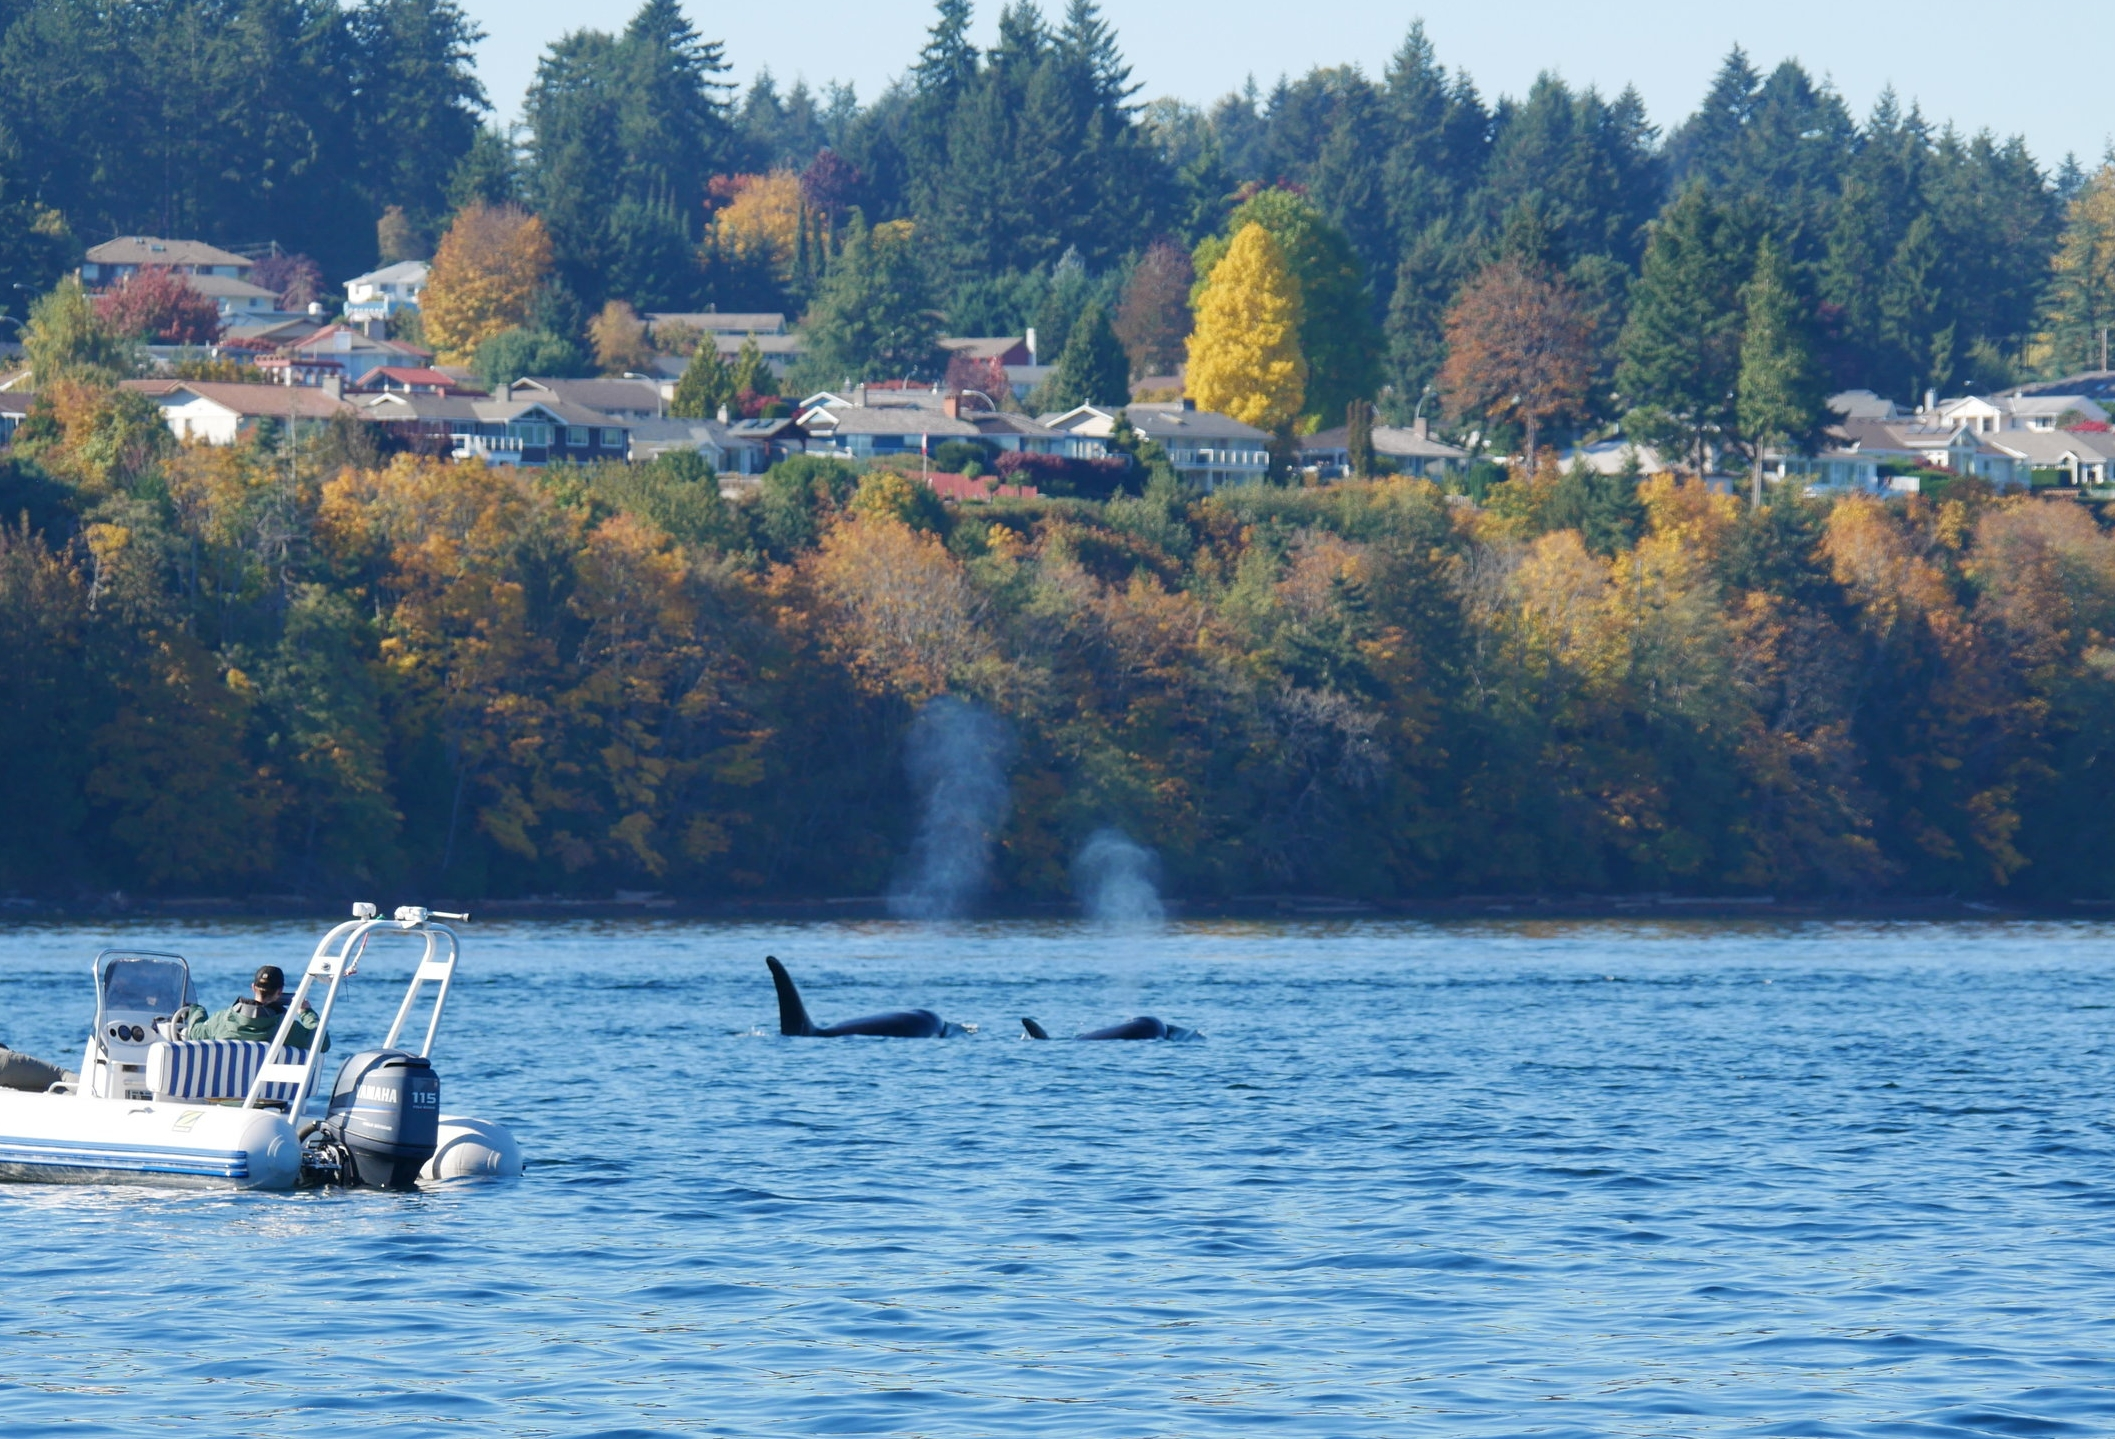 Beautiful fall colours and whales - love it!